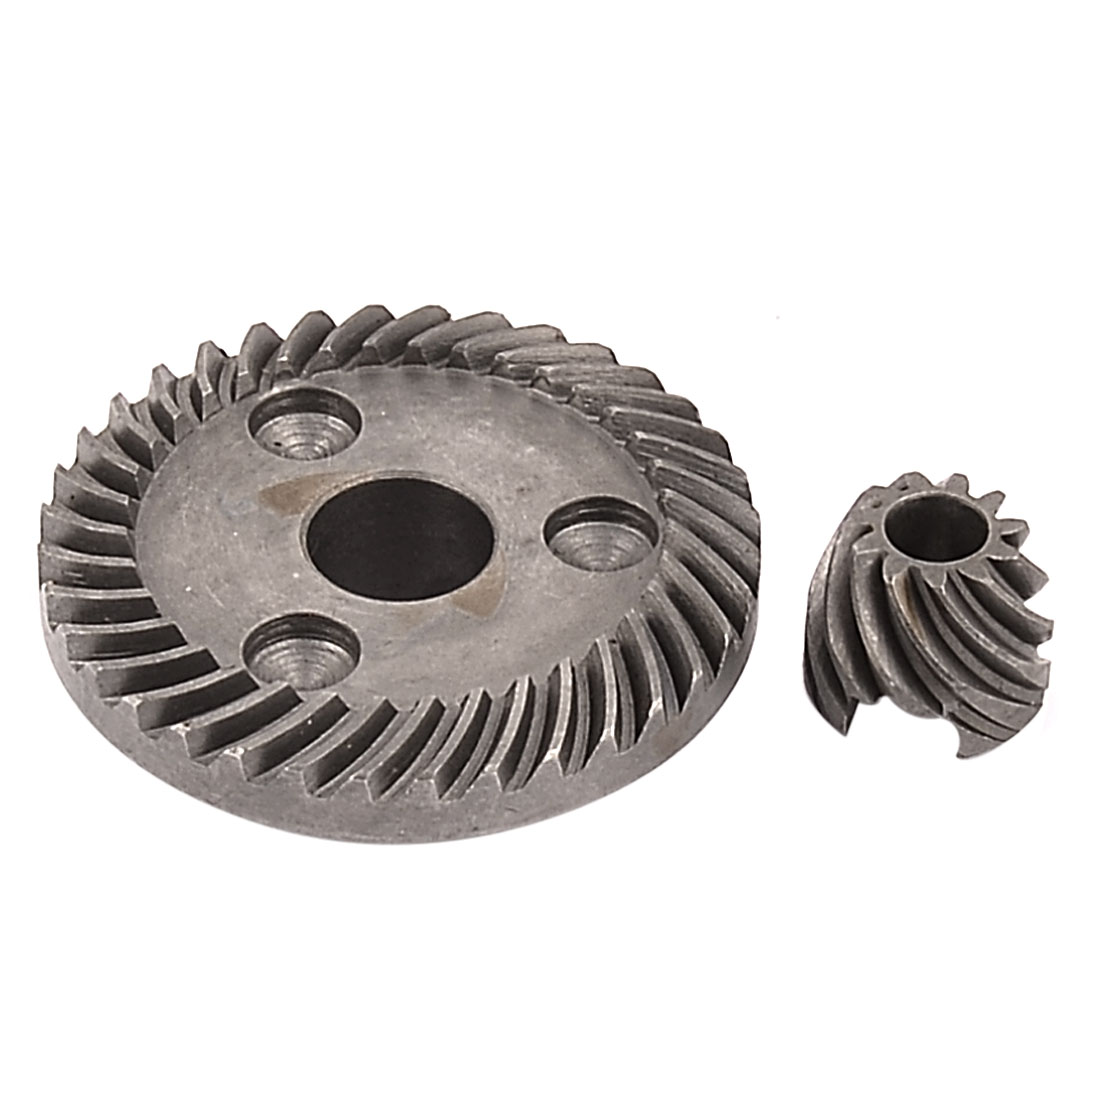 Repairing Angle Grinder Spiral Bevel Gear Set Electric Power Tool